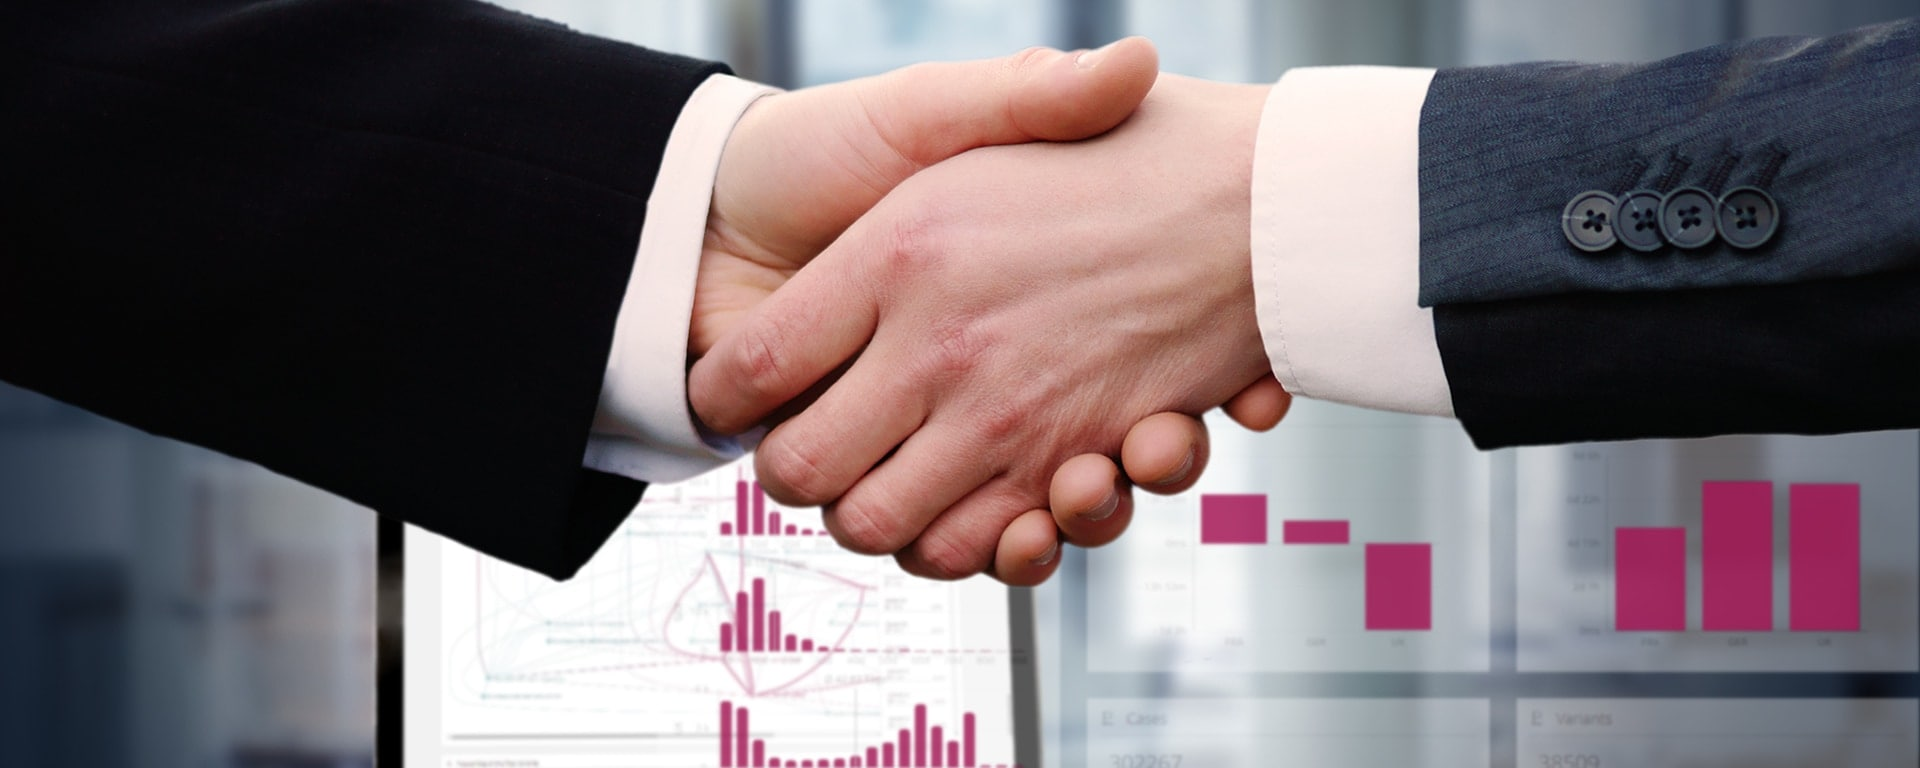 Process Governance & COE - two shaking hands